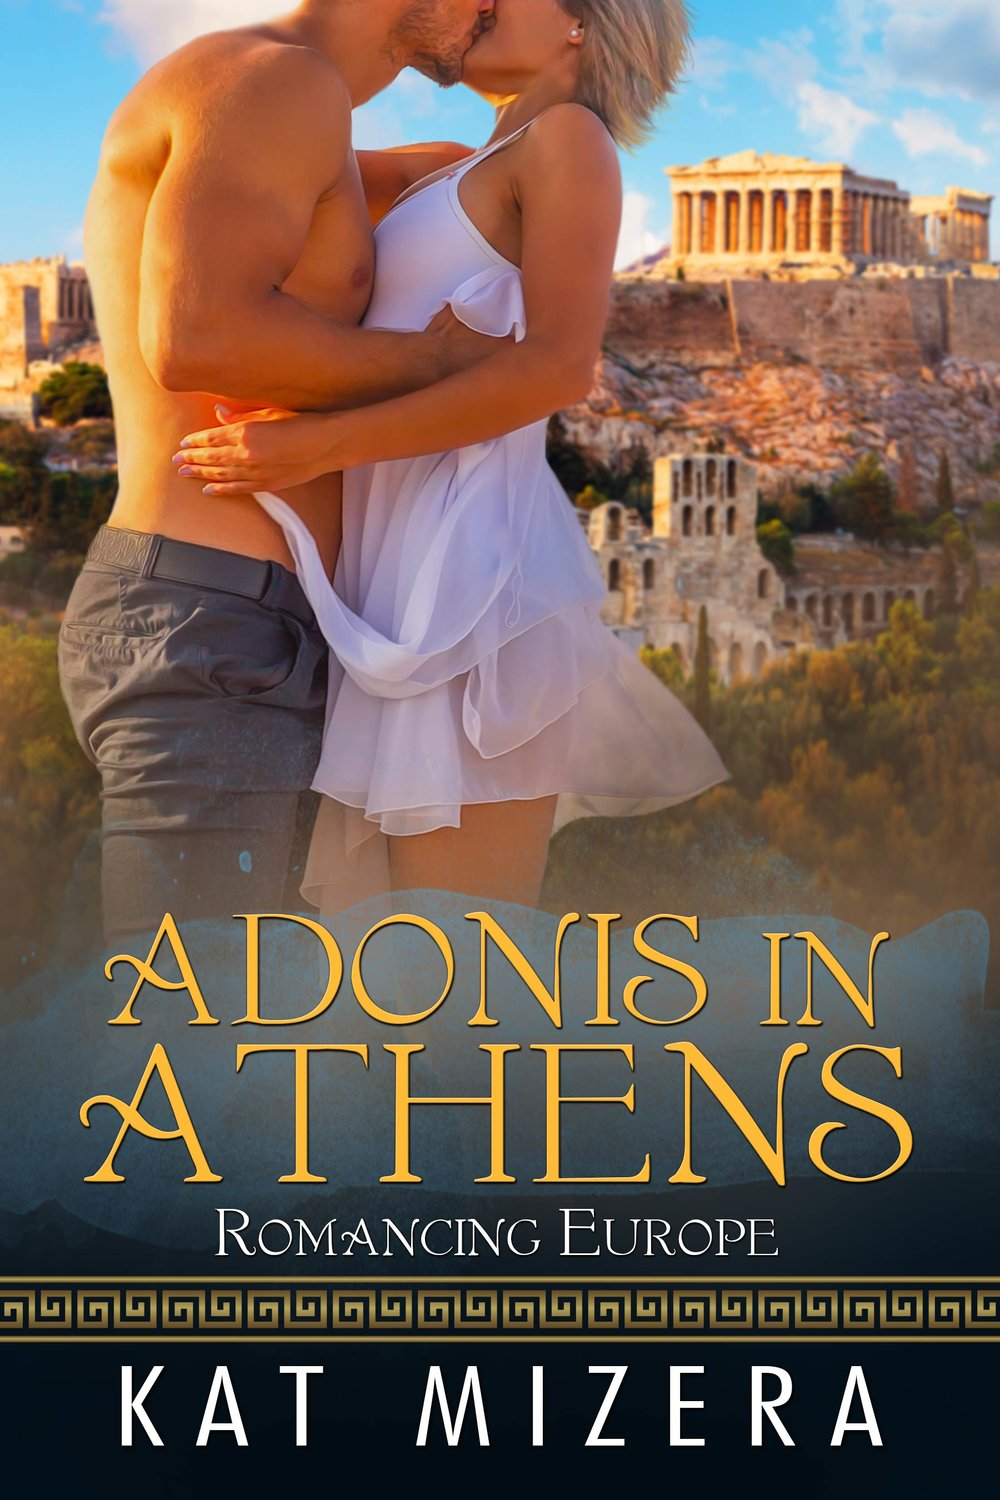 ONLY 99c FOR A LIMITED TIME!!   Amazon ~ iBooks ~ Nook  ~  Kobo     Paige Carter's fling with the dark-haired, green-eyed Greek was short, but it rocked her world. Her only regret was not finding out whether she'd ever see him again before he returned to Greece.  Apollo Lakkas earned his degree and was thrilled to return to Greece to begin work with his family's shipping business. His only regret is the way he left the sweet blonde he met in Vegas—who may or may not be his wife.  When an unexpected proposal throws Paige into a panic, she packs a bag for Athens and does the one thing she knows she must do before she can face any kind of future...reconcile her past.  The moment their eyes meet once again, Paige and Apollo feel the same spark that ignited them down the aisle. Will they be able to plan a future together or is their love destined to be nothing but a bittersweet memory?